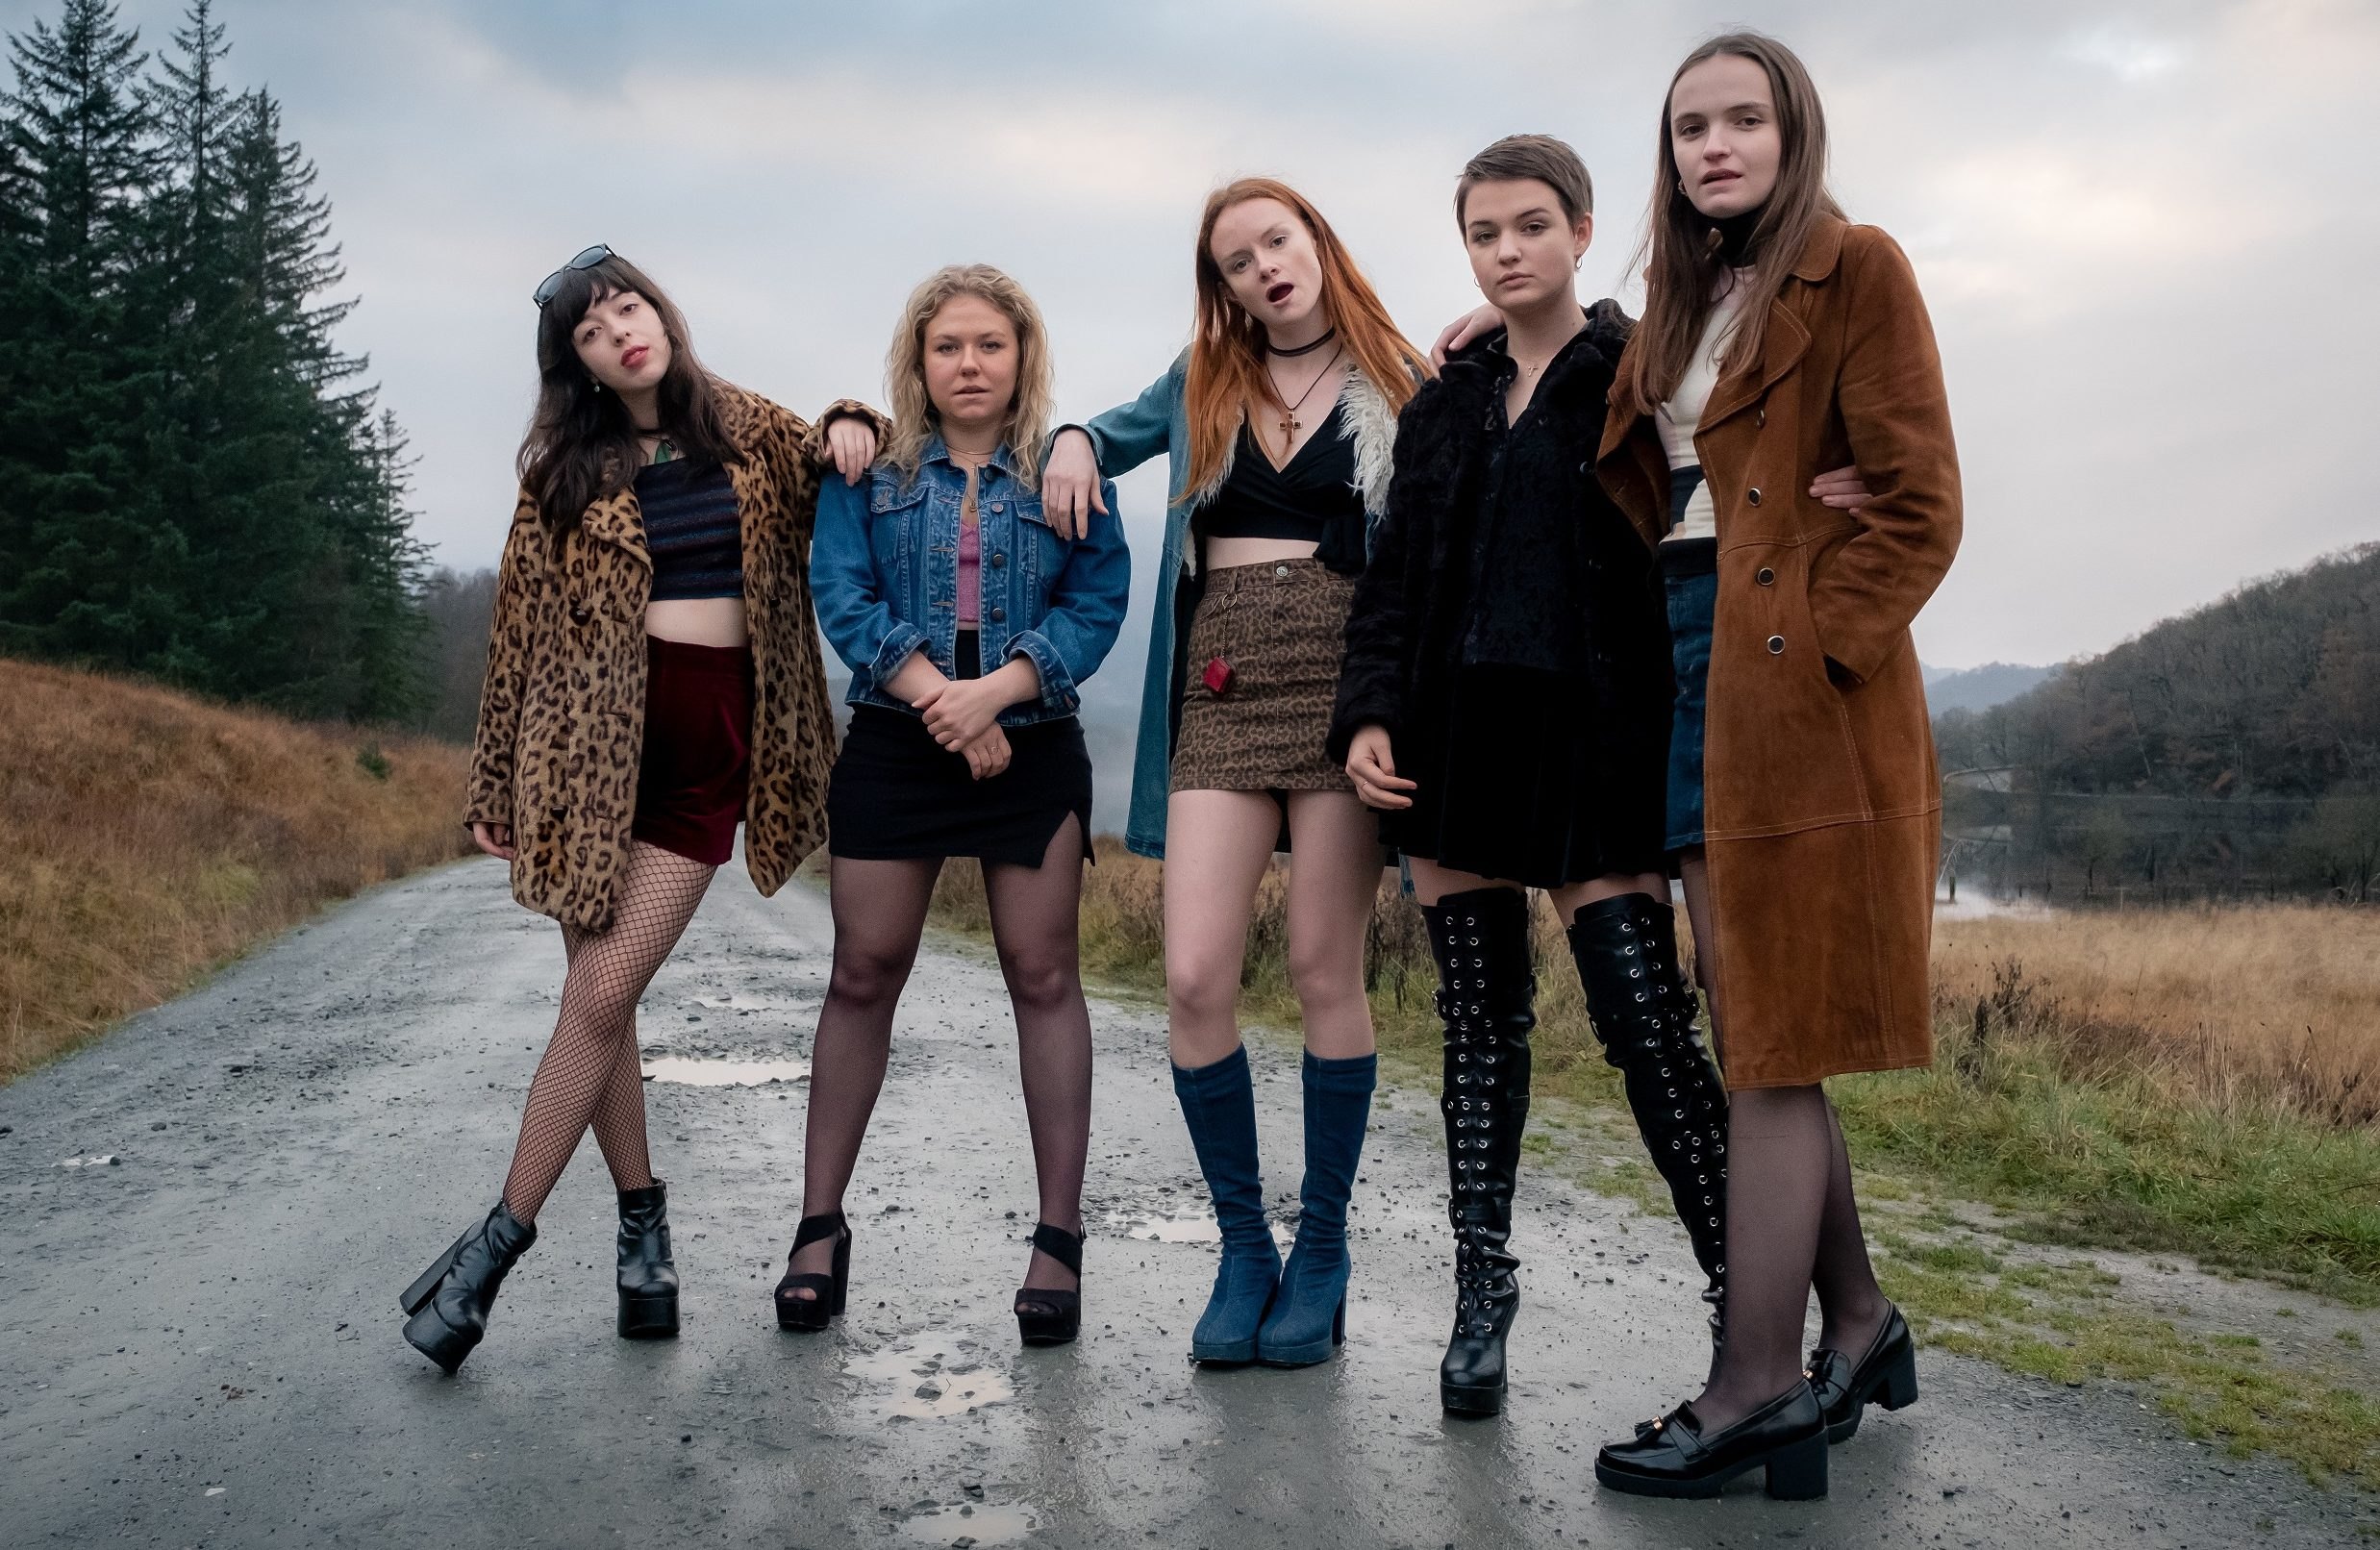 Marli Siu, Sally Messham, Rona Morison, Tallulah Greive, and Abigail Lawrie, in a scene from Our Ladies, a comedy film by Michael  Caton-Jones, set in the 1990s about six Catholic school girls travelling to Edinburgh for a choir competition